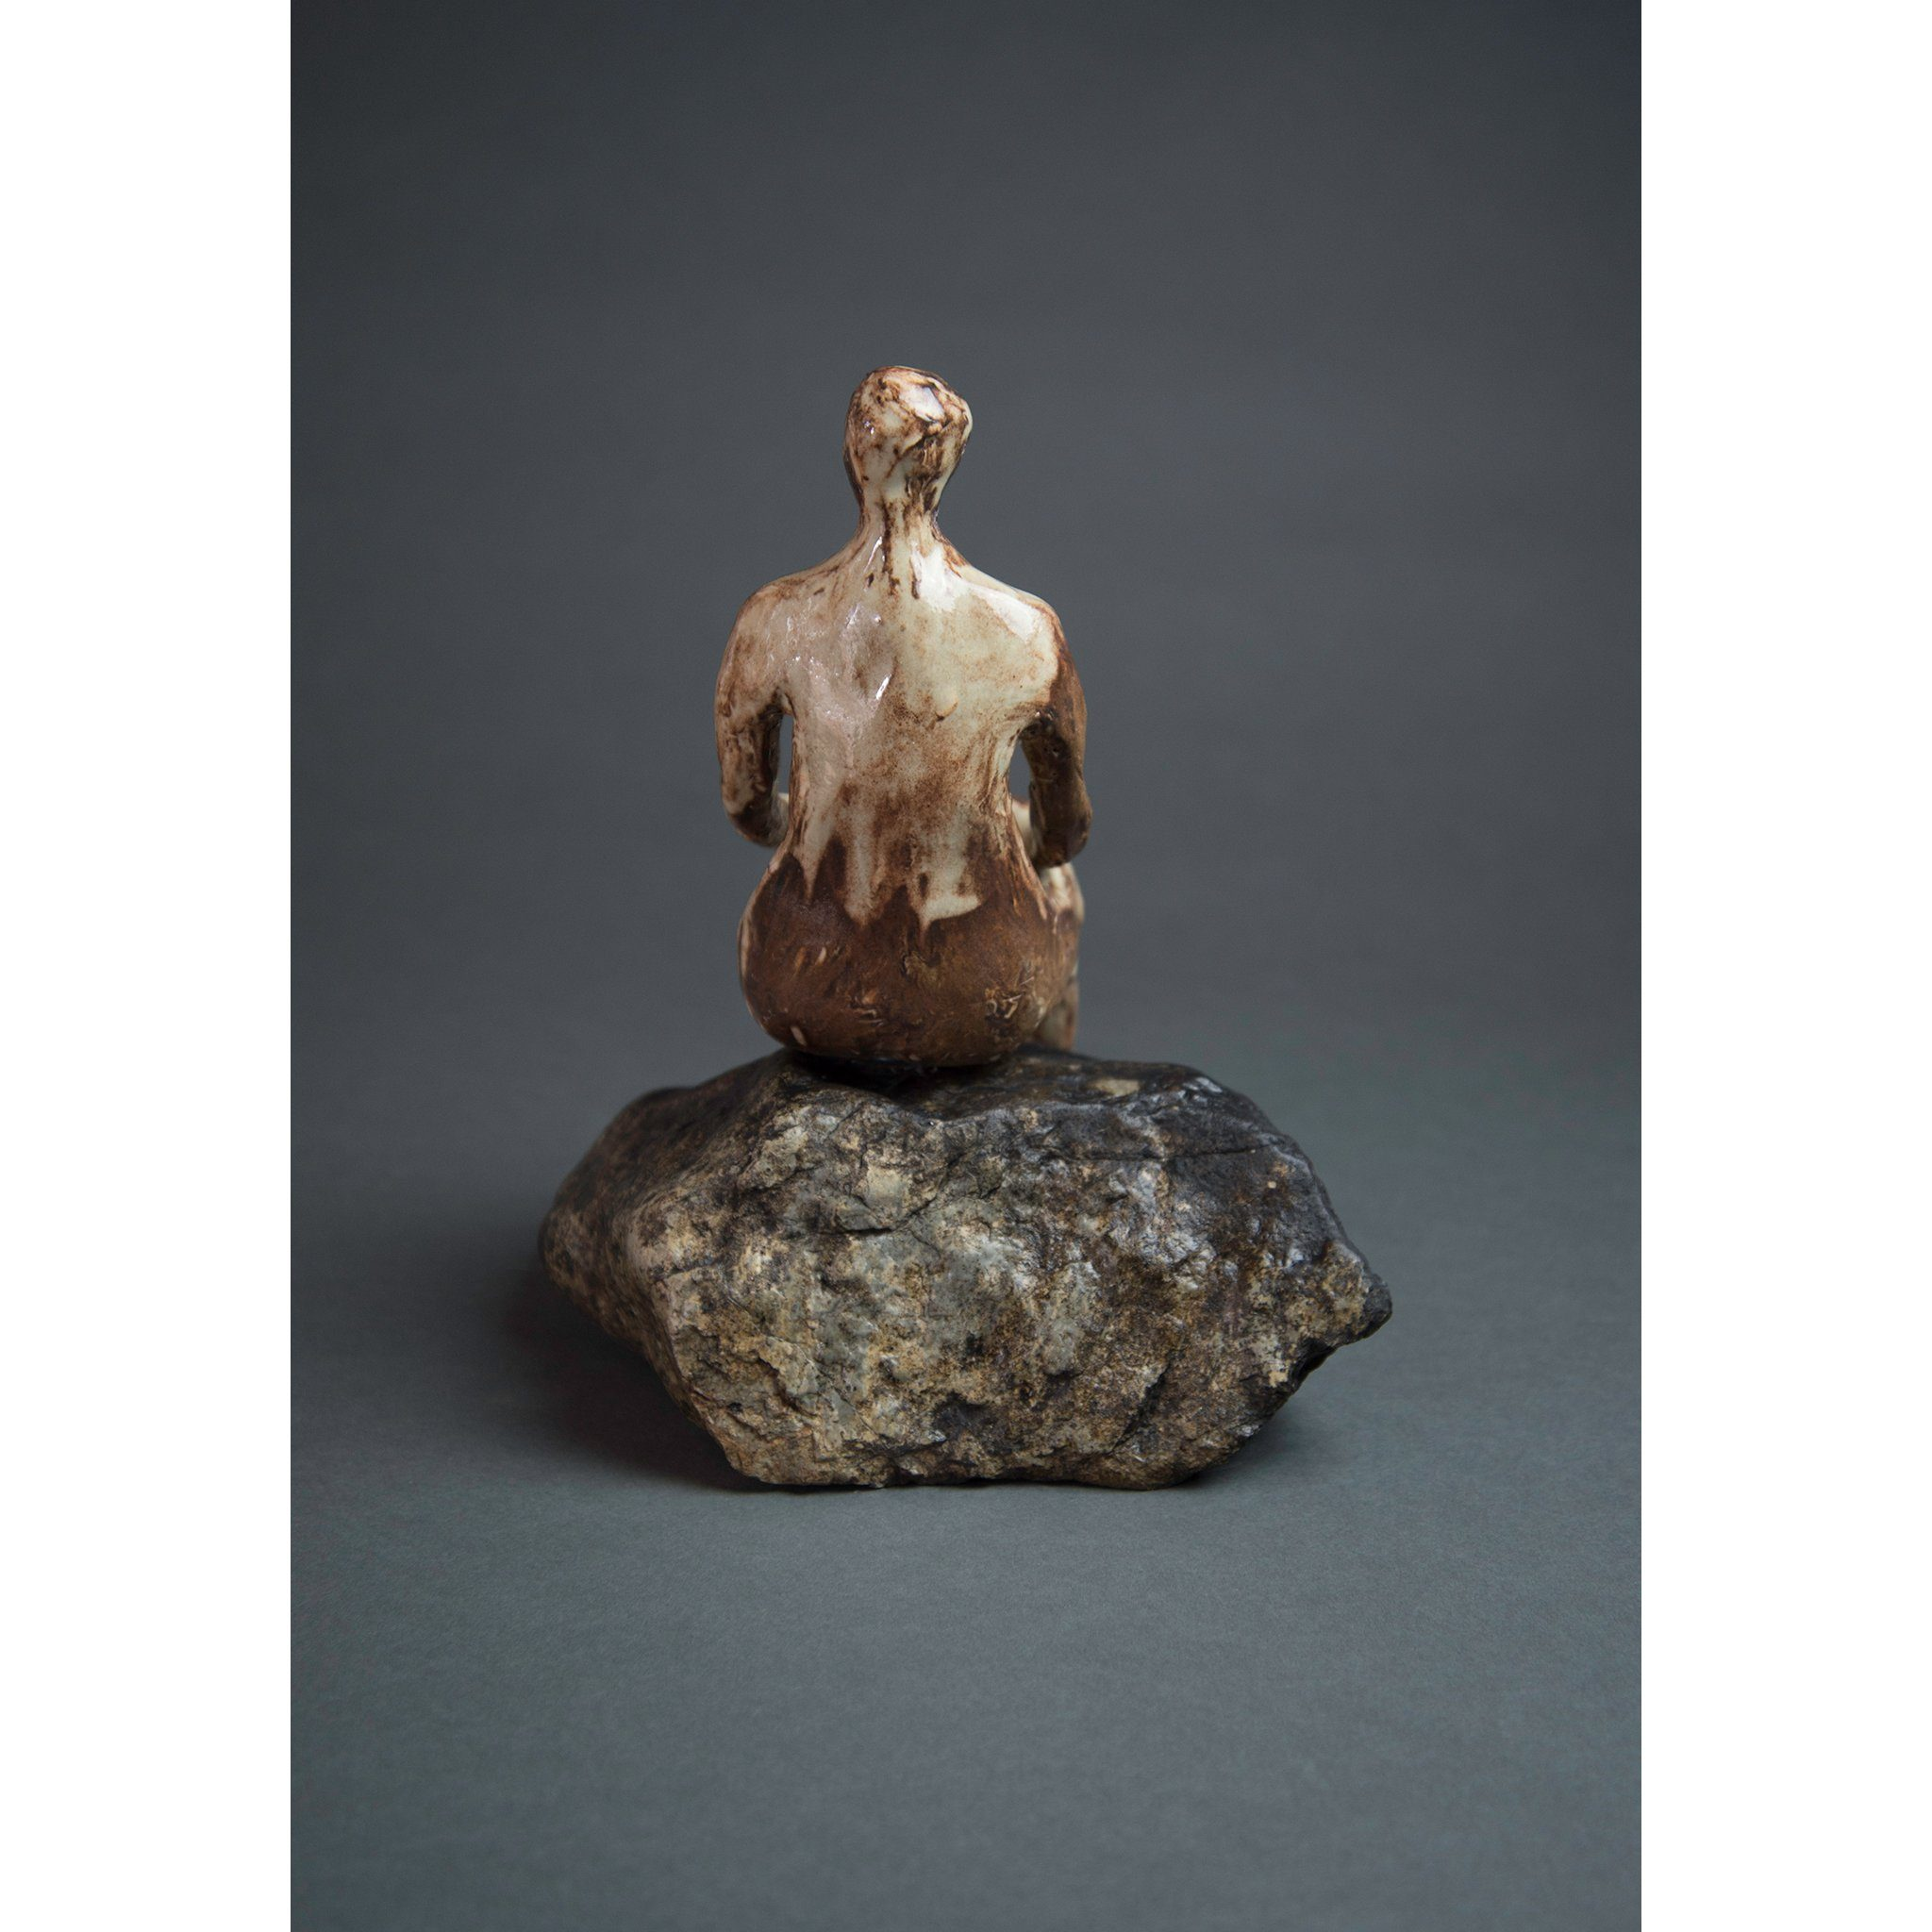 Man on Rock 3 (10.25x10x7) - Norlynne Coar Fine Art